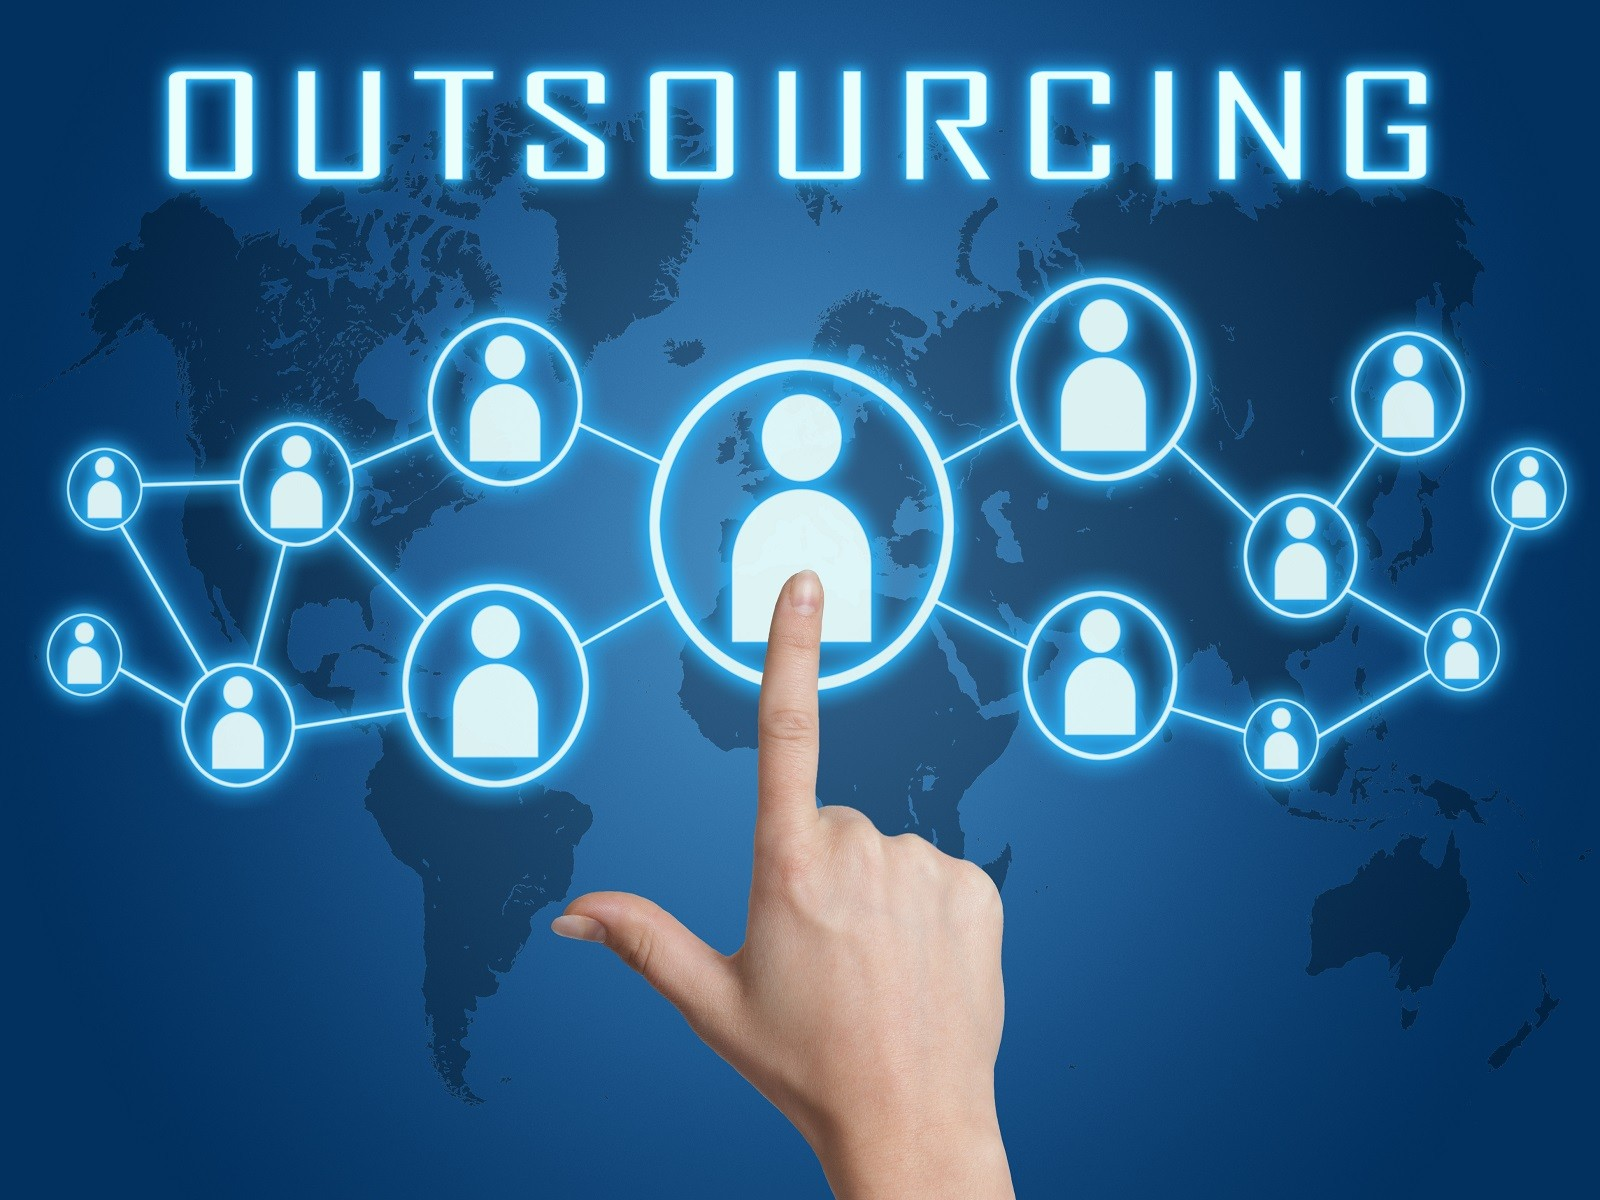 7 Reasons Why Outsourcing Your Bookkeeping Can Save Your Business